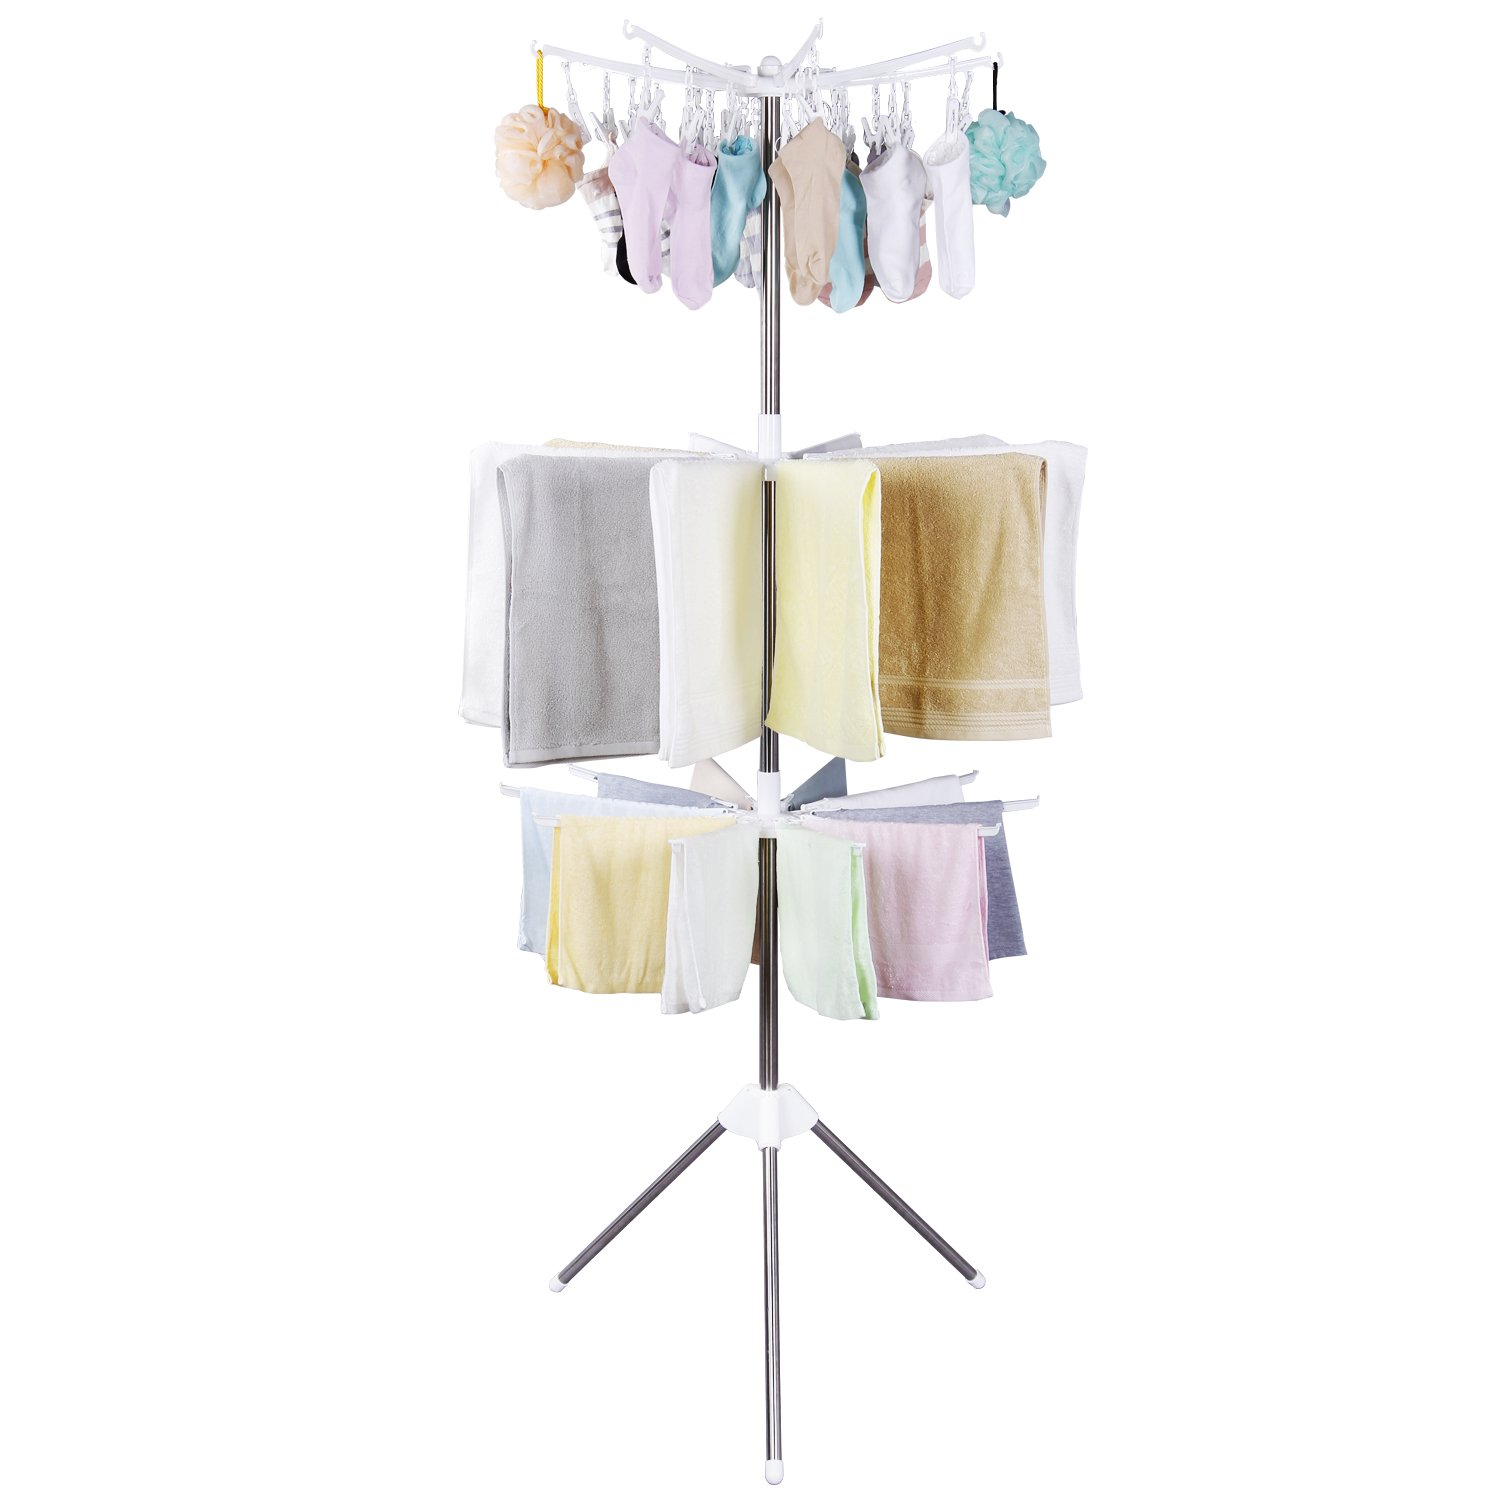 Amazoncom Lifewit Foldable Clothes Drying Rack Portable 3 Tier Clothes Hanging